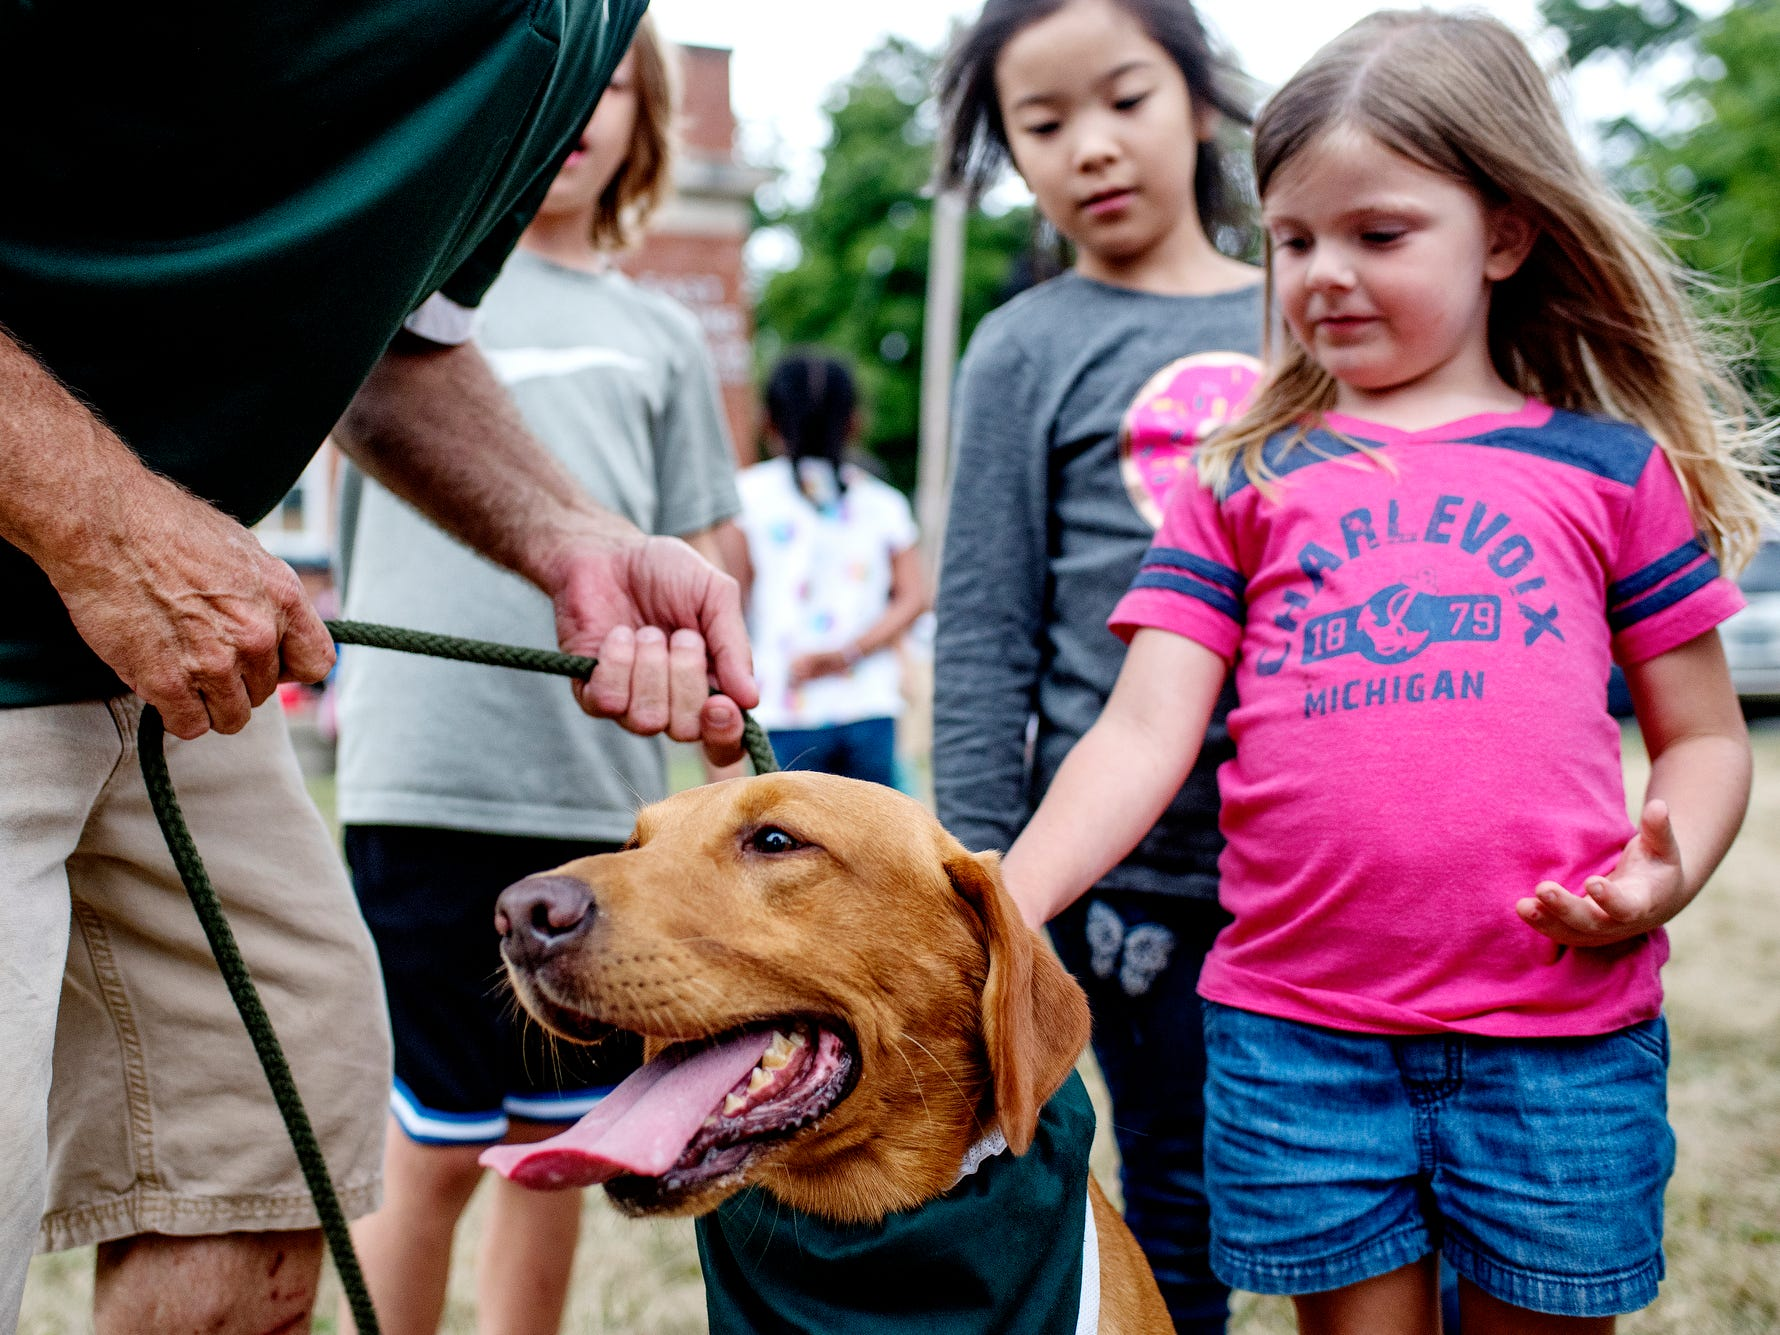 Children line up to meet Zeke the Wonderdog IV after a performance at Play in the Park on Tuesday, July 31, 2018, at Valley Court Park in East Lansing.